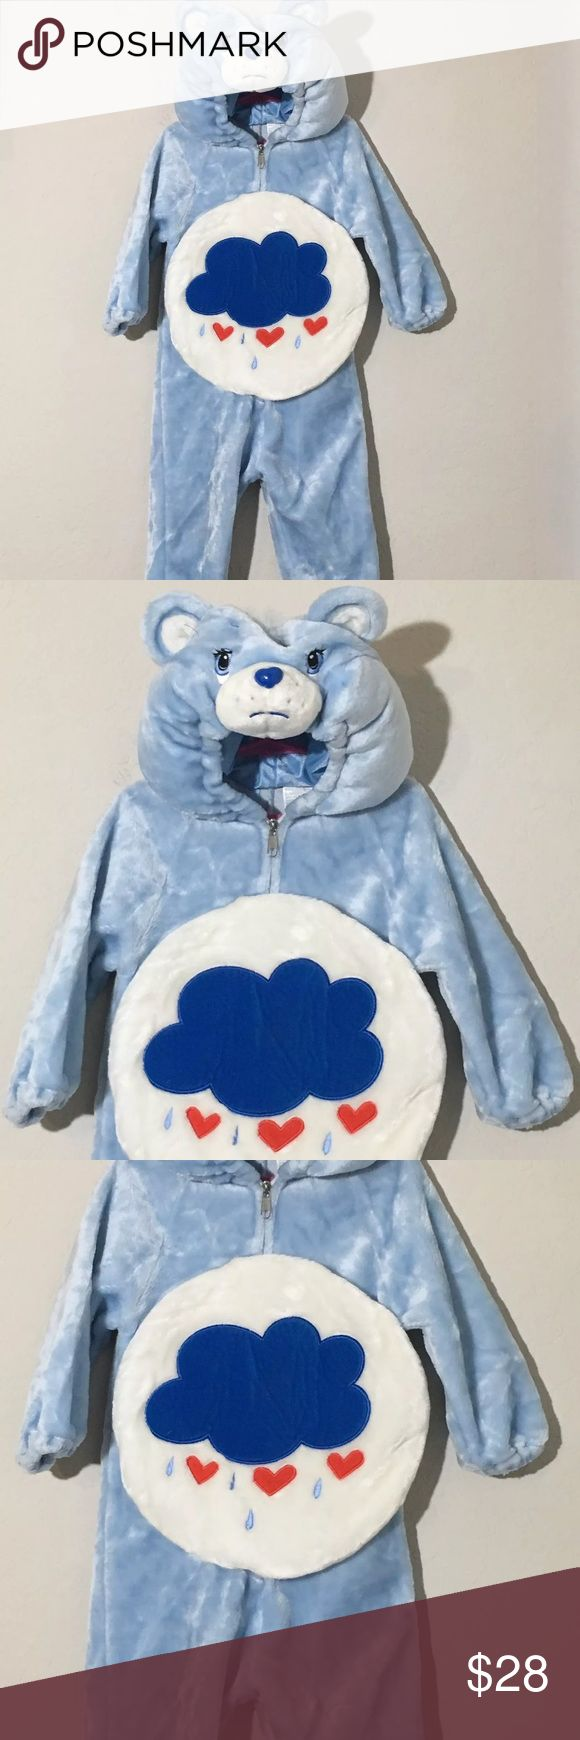 Care Bear Blue Grumpy Bear Halloween Costume 2T-4T Children's Care Bears Grumpy Bear Halloween costume! Full body suit feet and hands will be out bear hood goes over head with child's face showing. Excellent condition no flaws Costumes Halloween